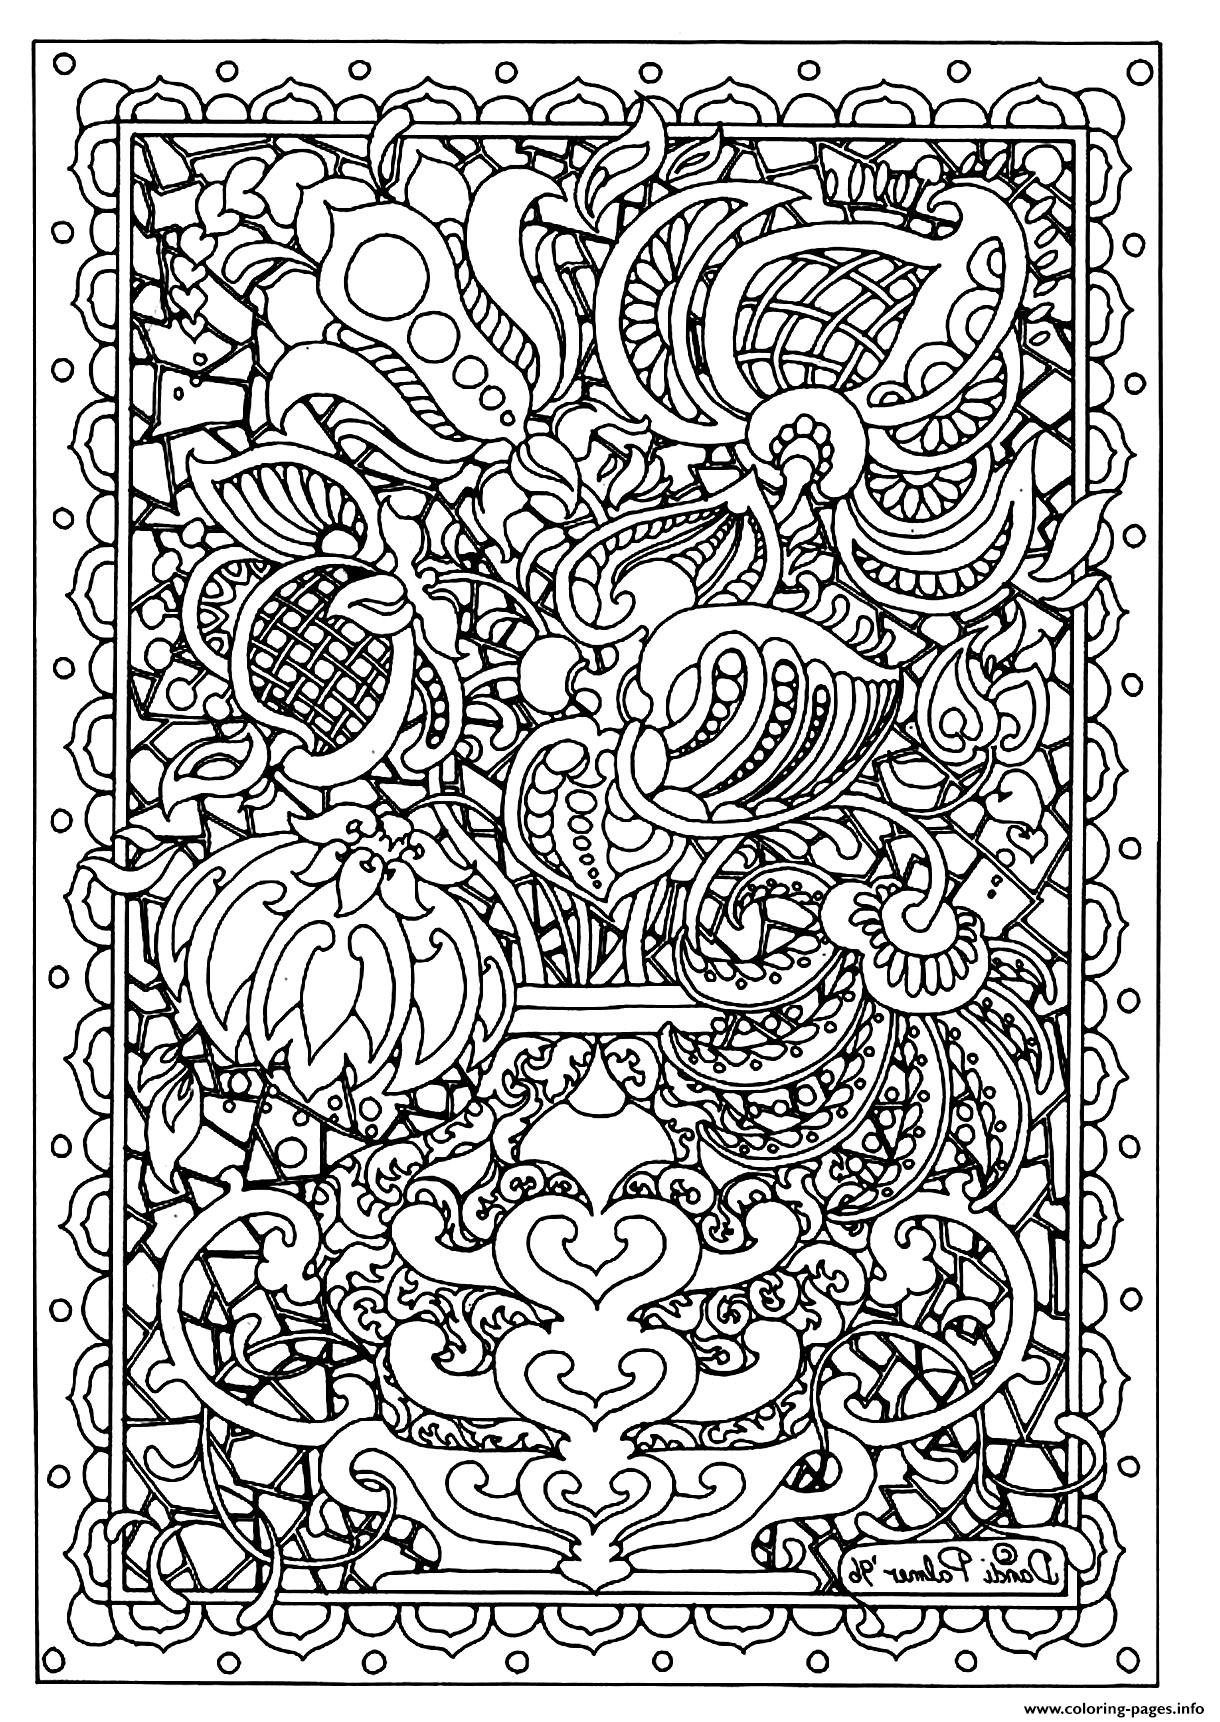 Pin Difficult Flower Colouring Pages